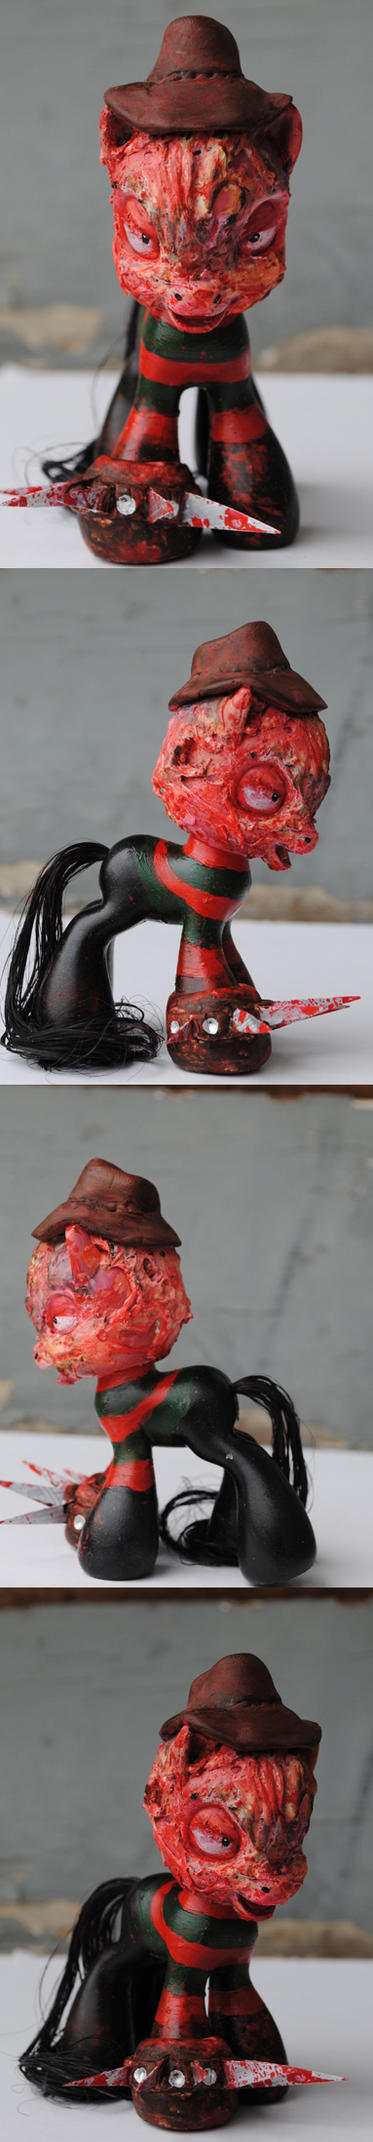 My Little Pony Freddy Krueger by Tat2ood-Monster